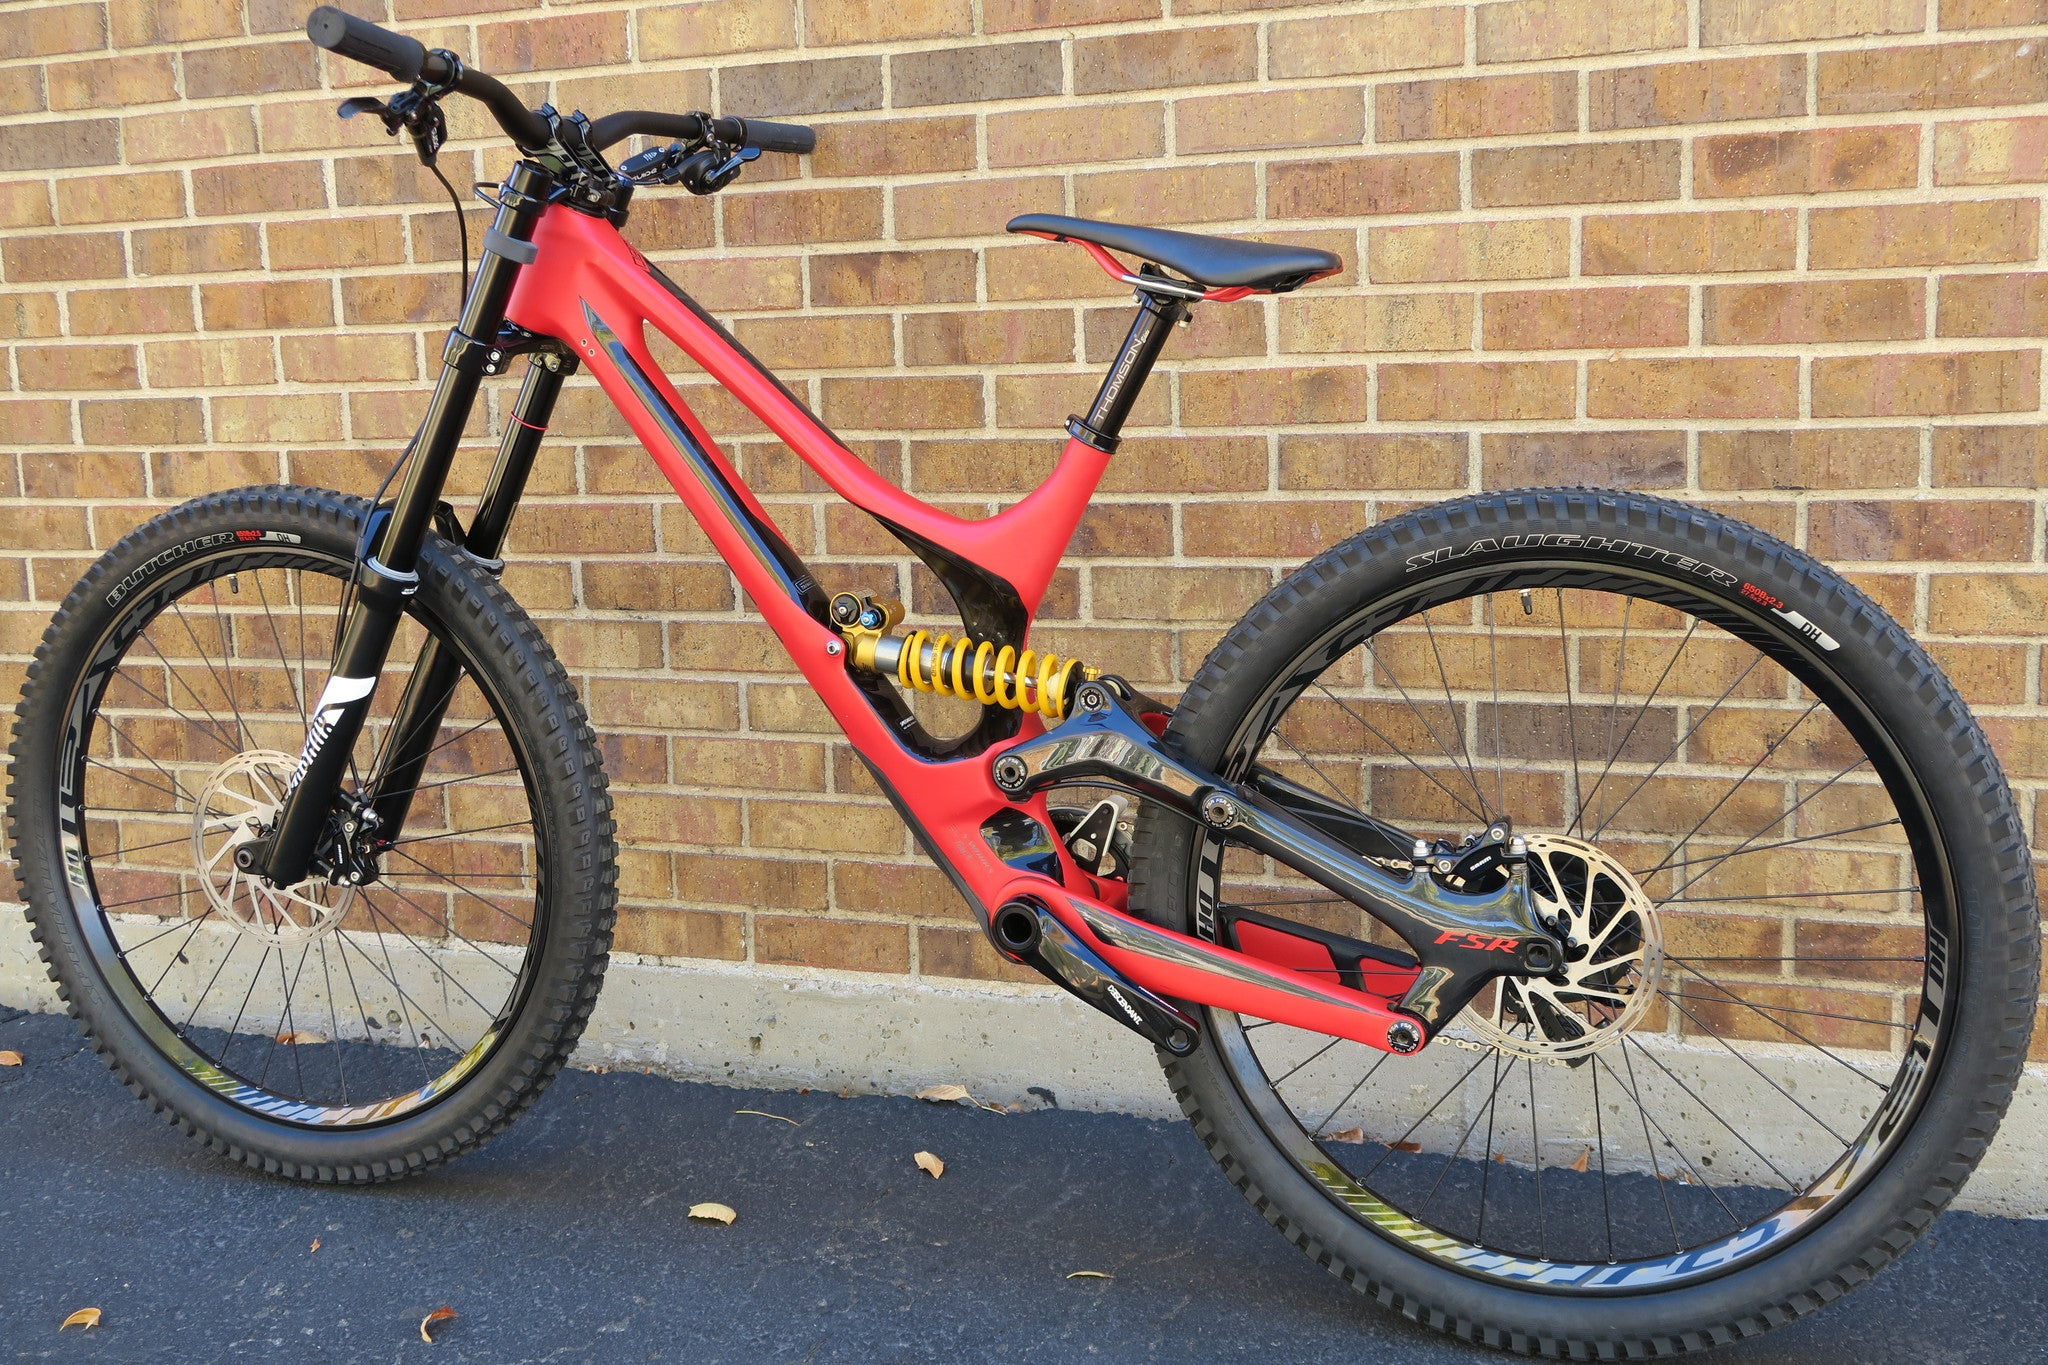 2016 S-WORKS DEMO 8 CARBON